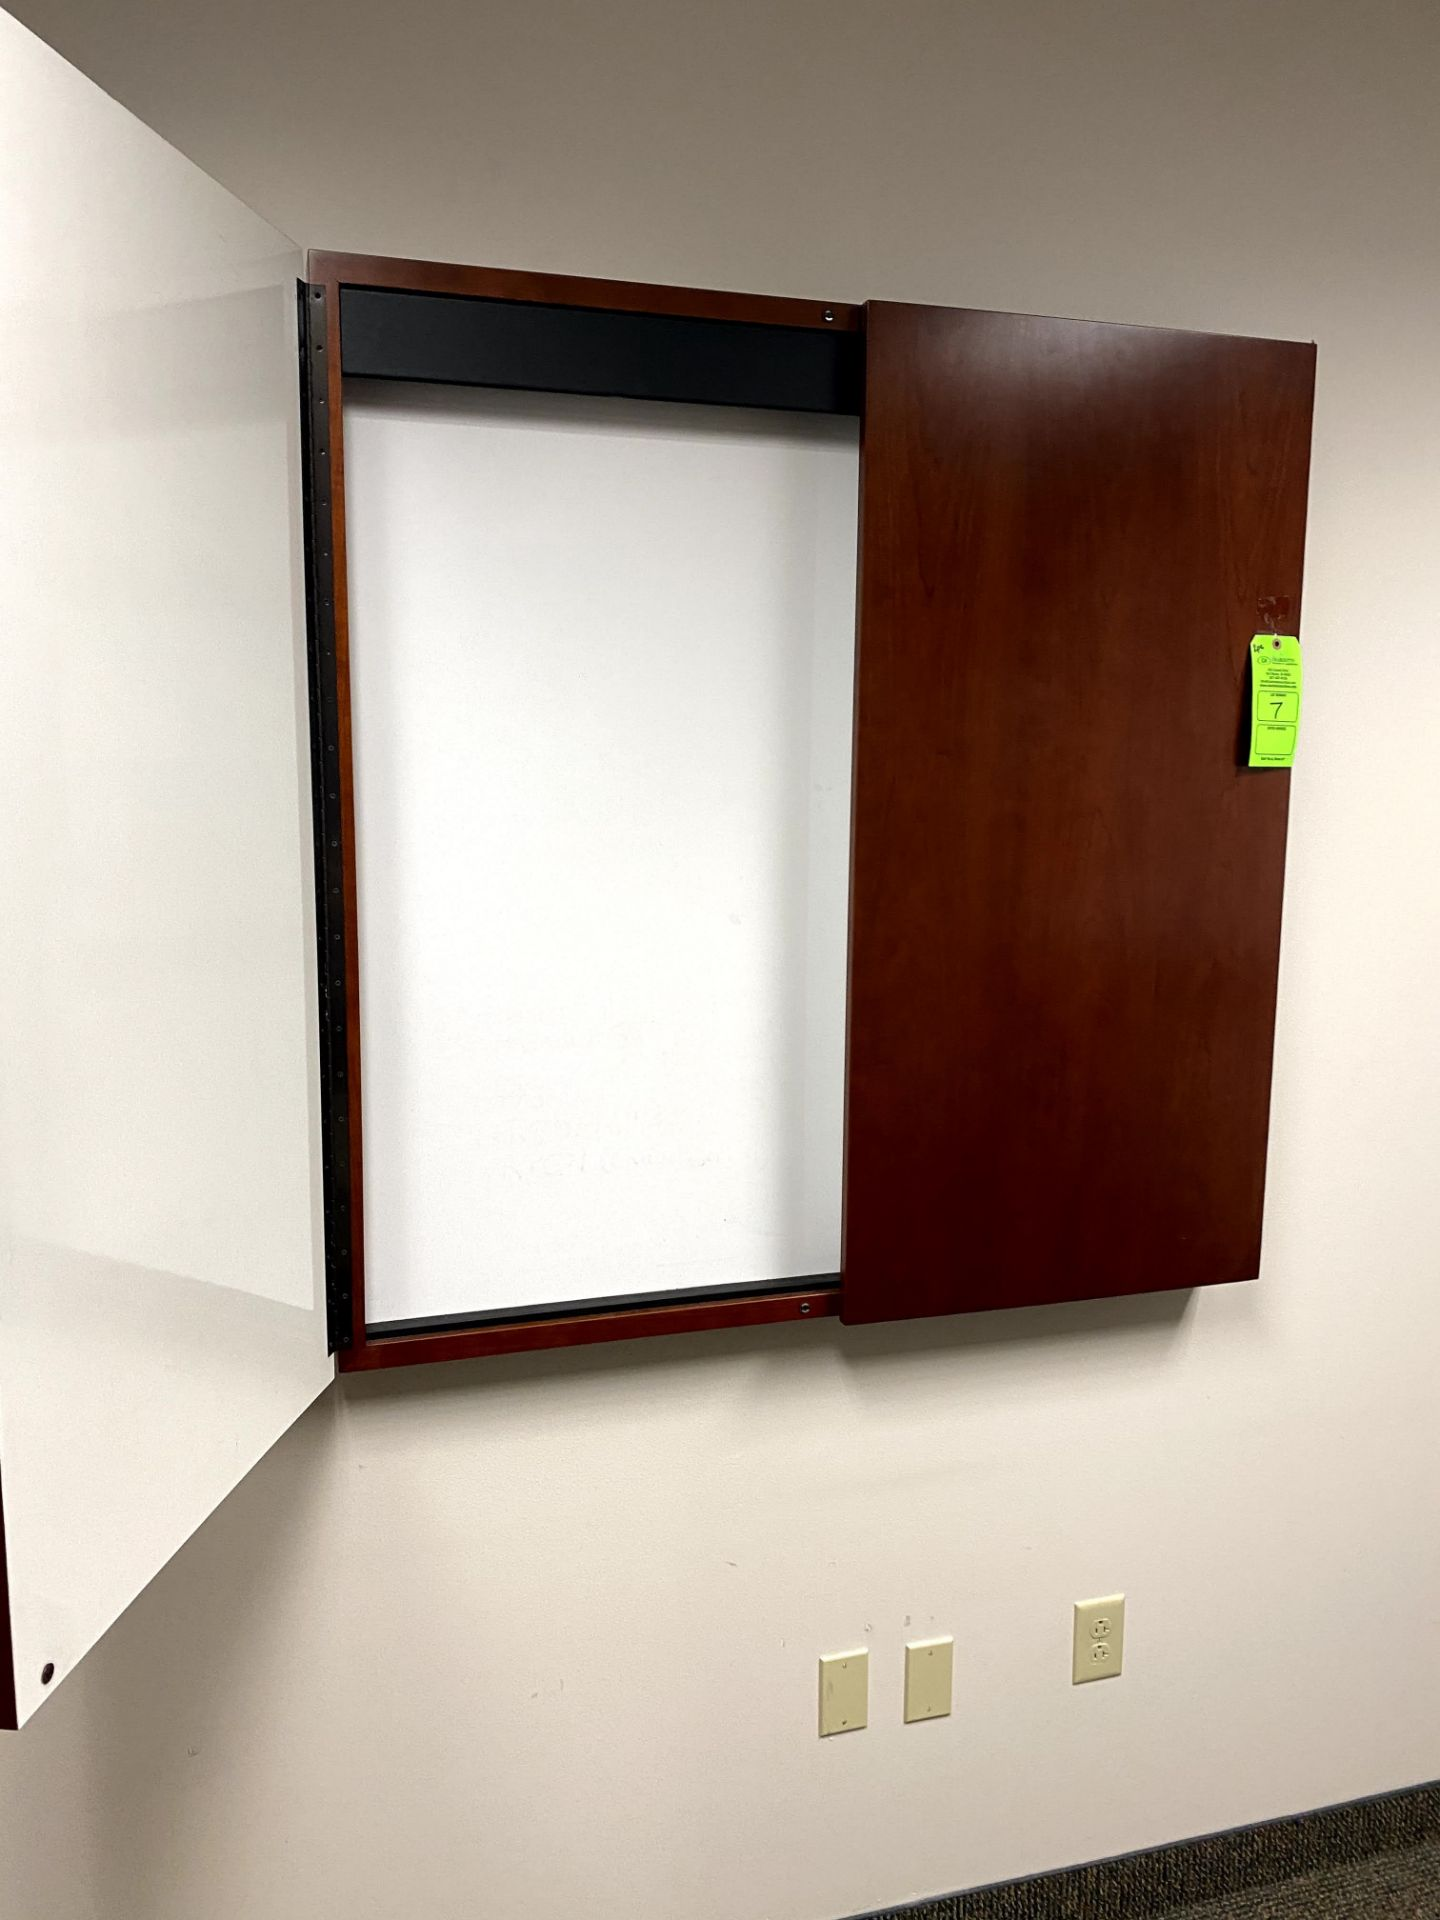 (2) CHERRY WOOD WALL MOUNTED DRY ERASE BOARD(S) - 1 WITH PULL DOWN SCREEN -- (7625 OMNITECH PLACE